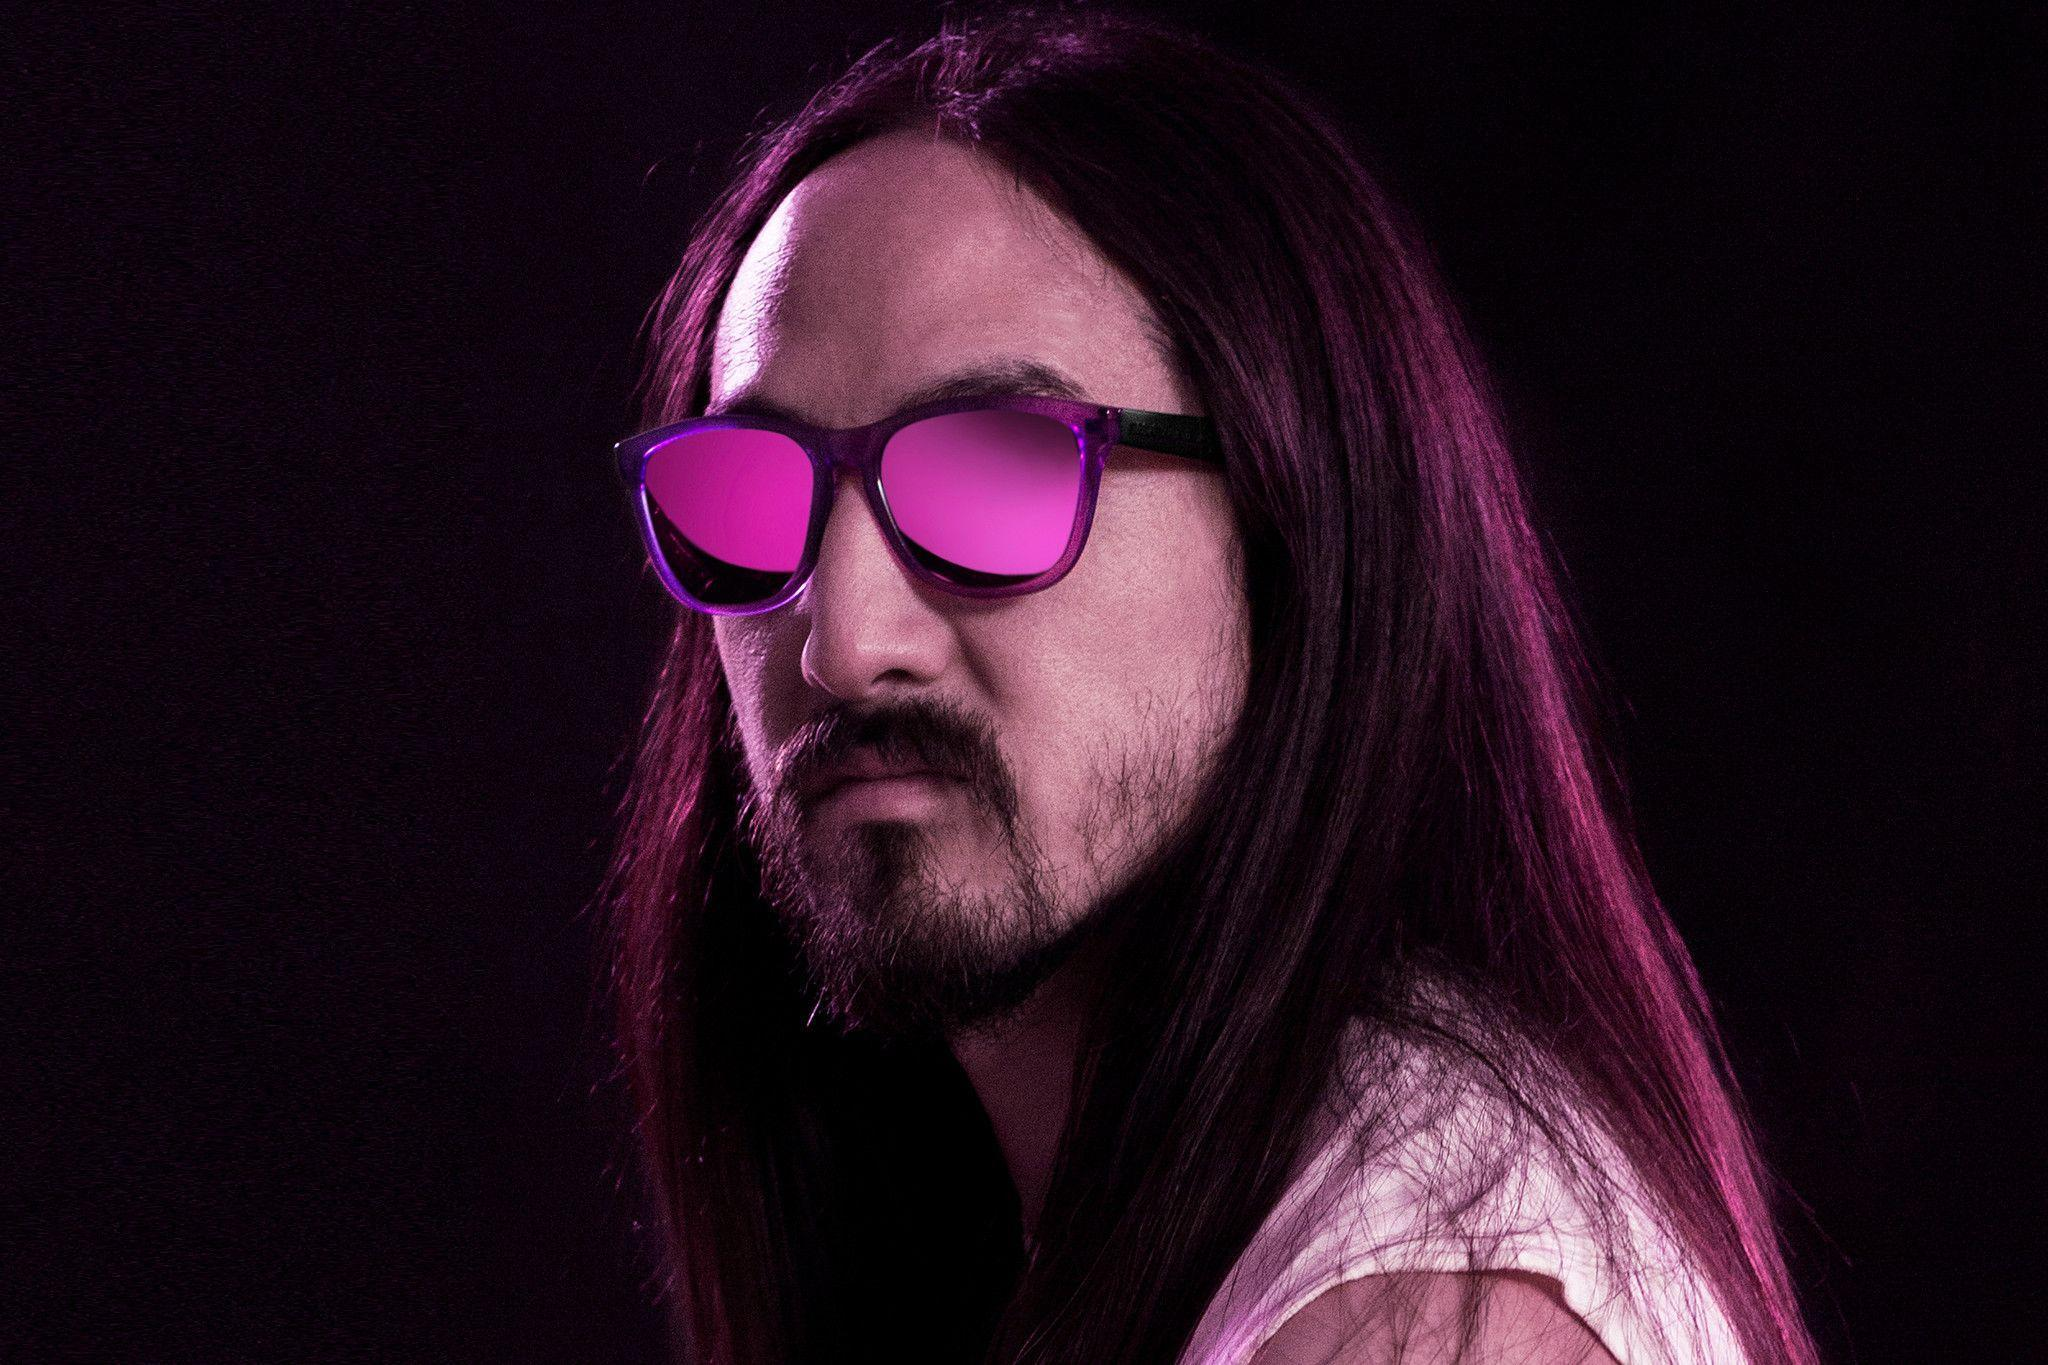 Steve Aoki Wallpapers - Wallpaper Cave